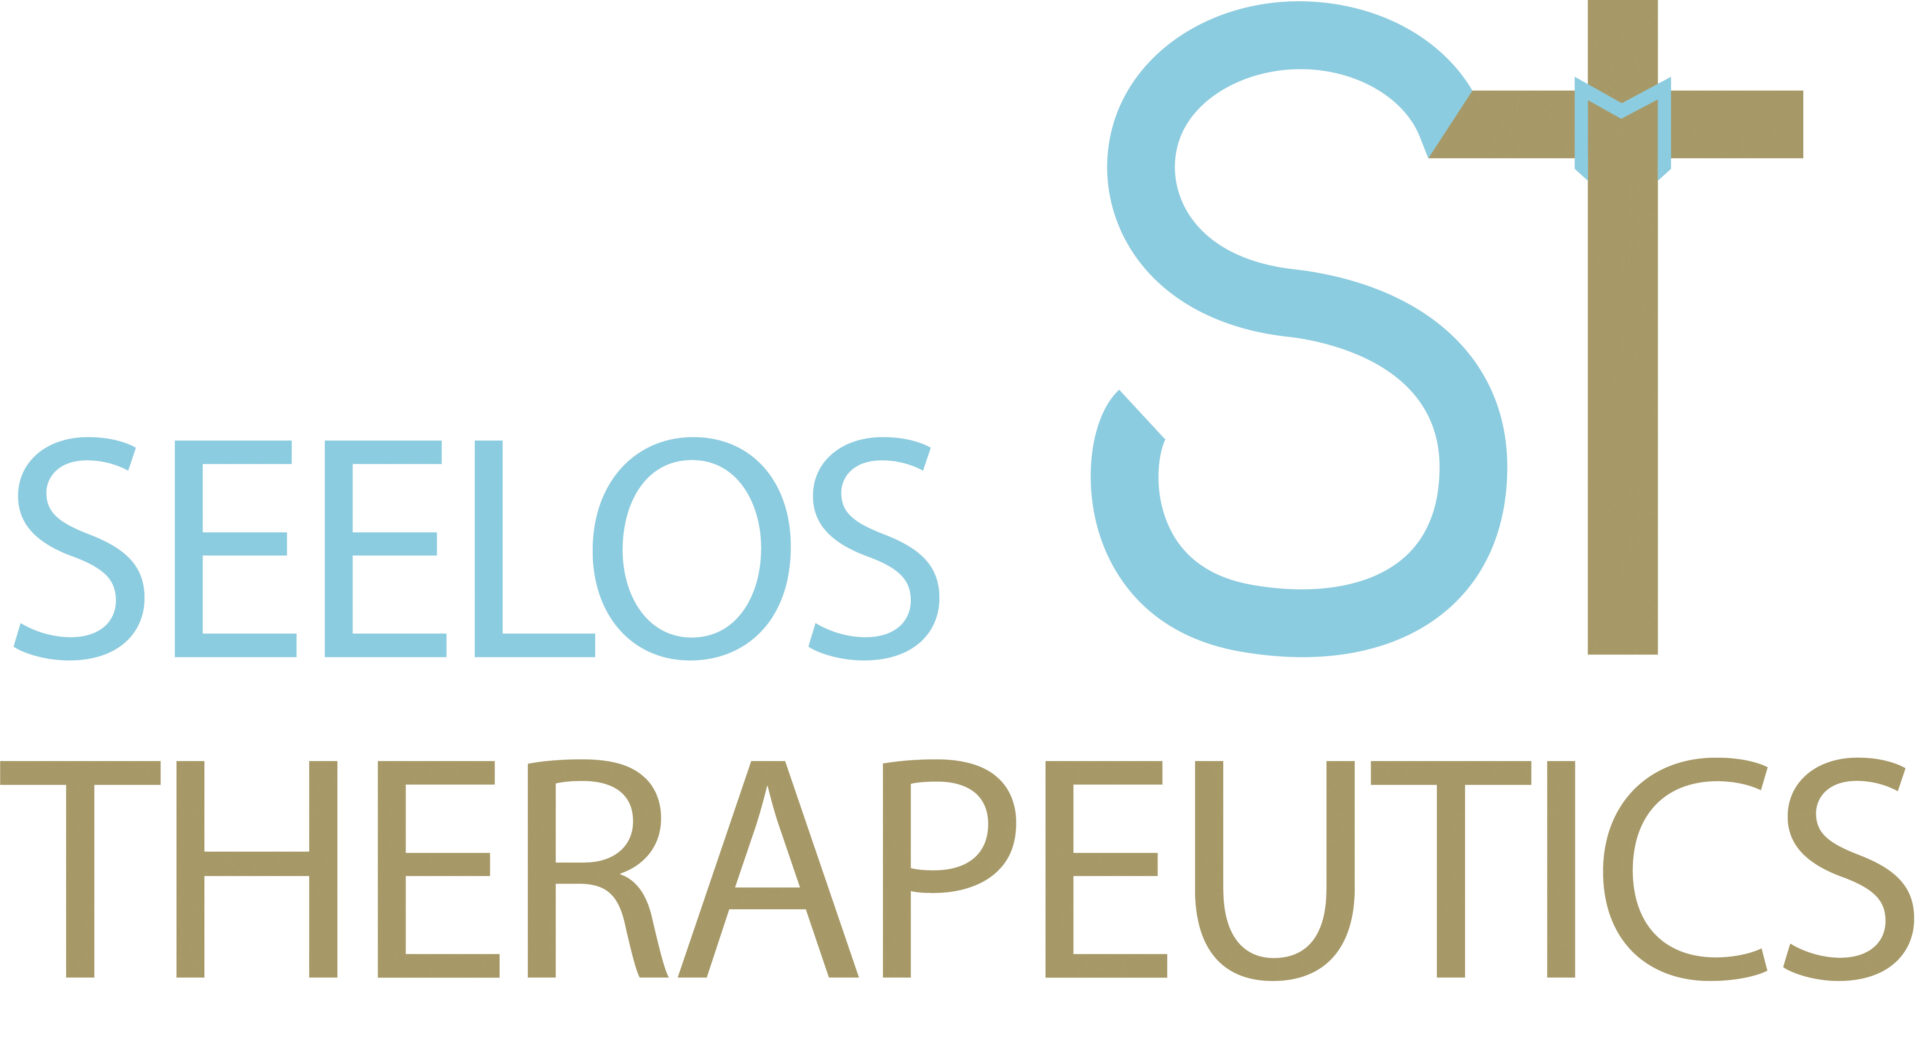 Seelos_full-logo-and-icon-color_2-1920x1058.jpg